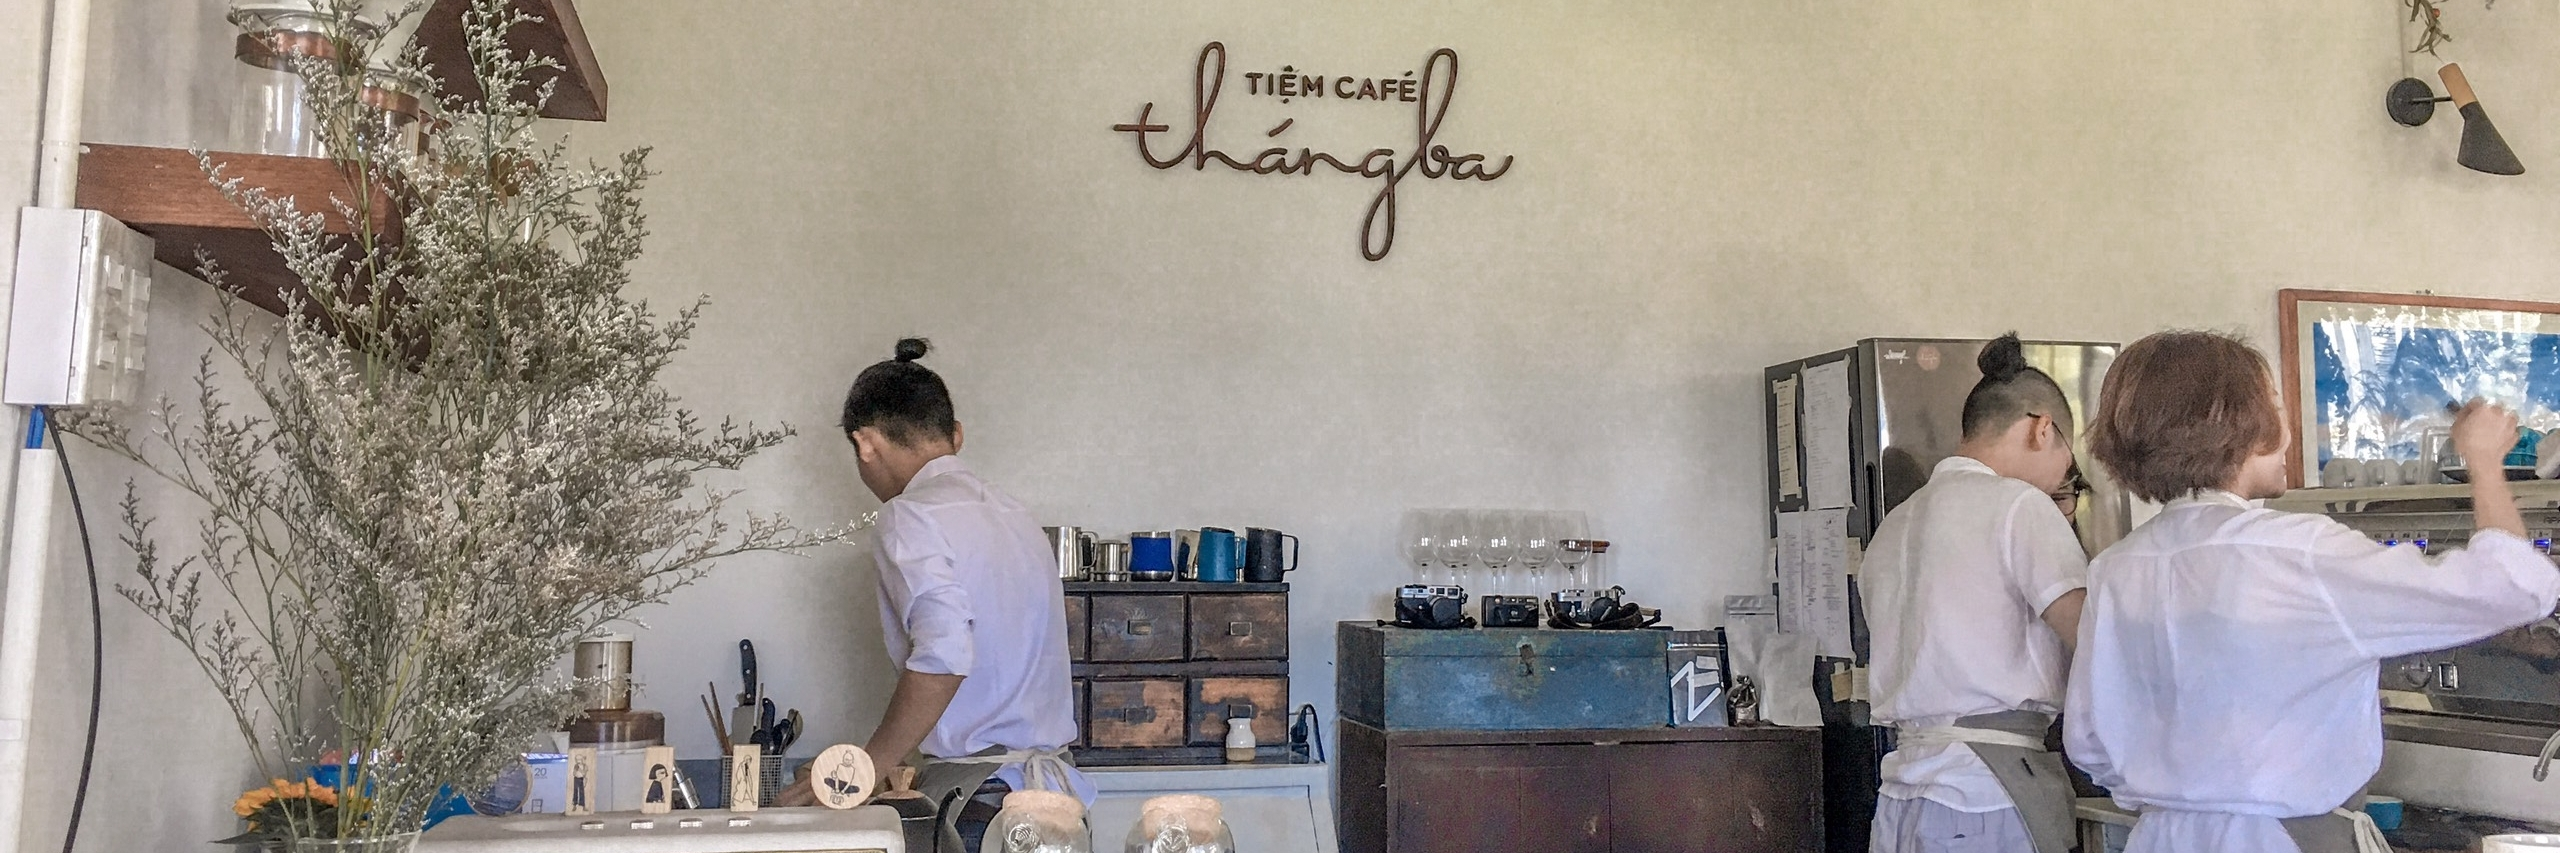 https://gody.vn/blog/vanhaitlhb231322/post/tiem-cafe-thang-3-6412